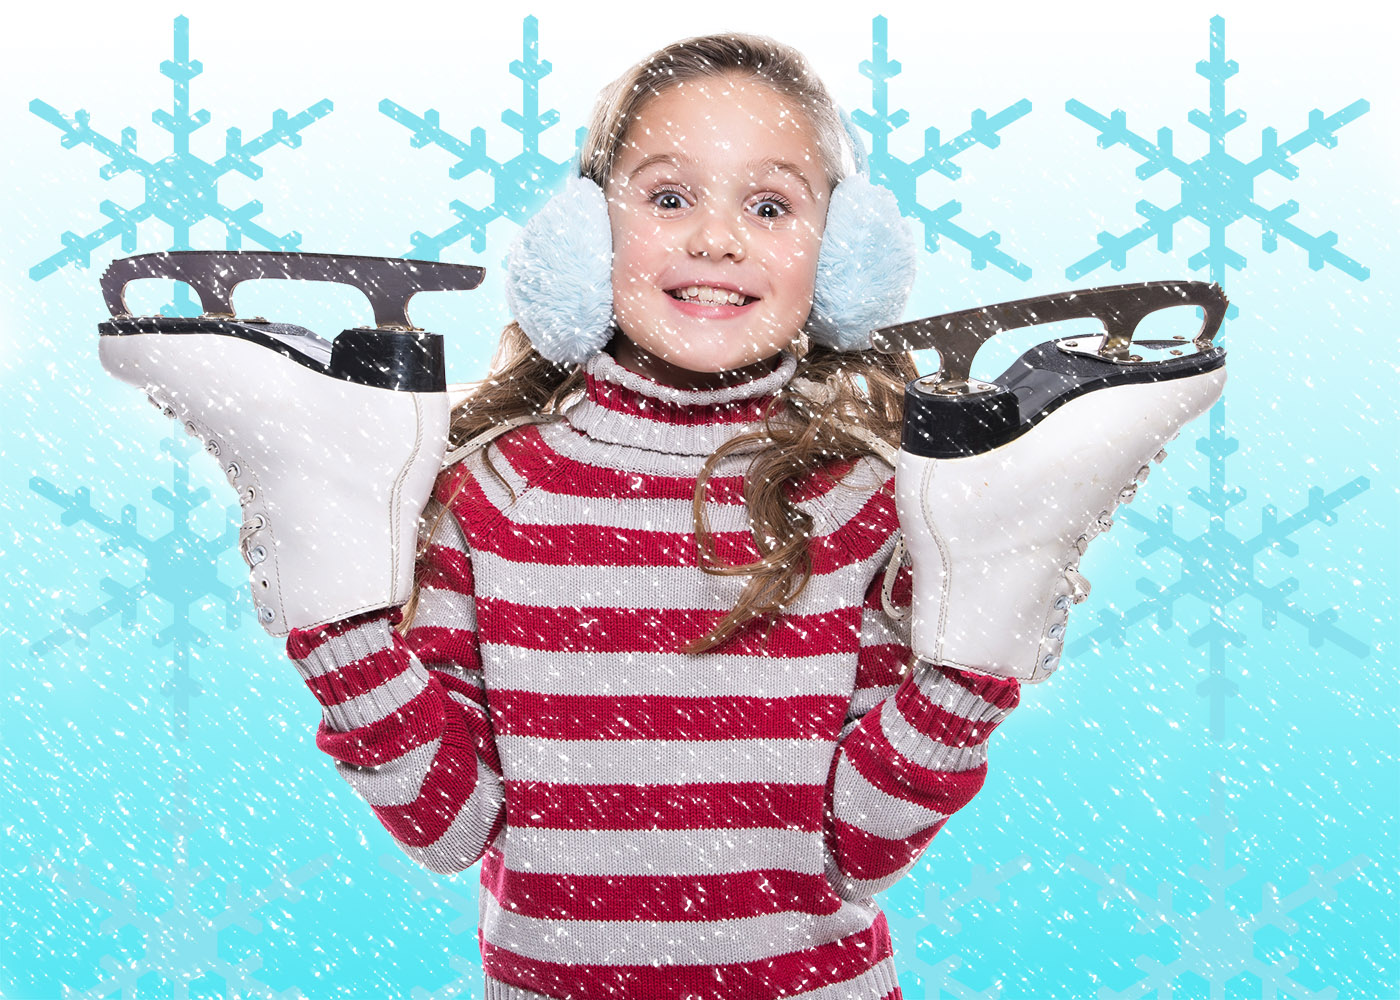 iphotoshop girl ice skating winter scene snowflakes red striped jumper earmuffs